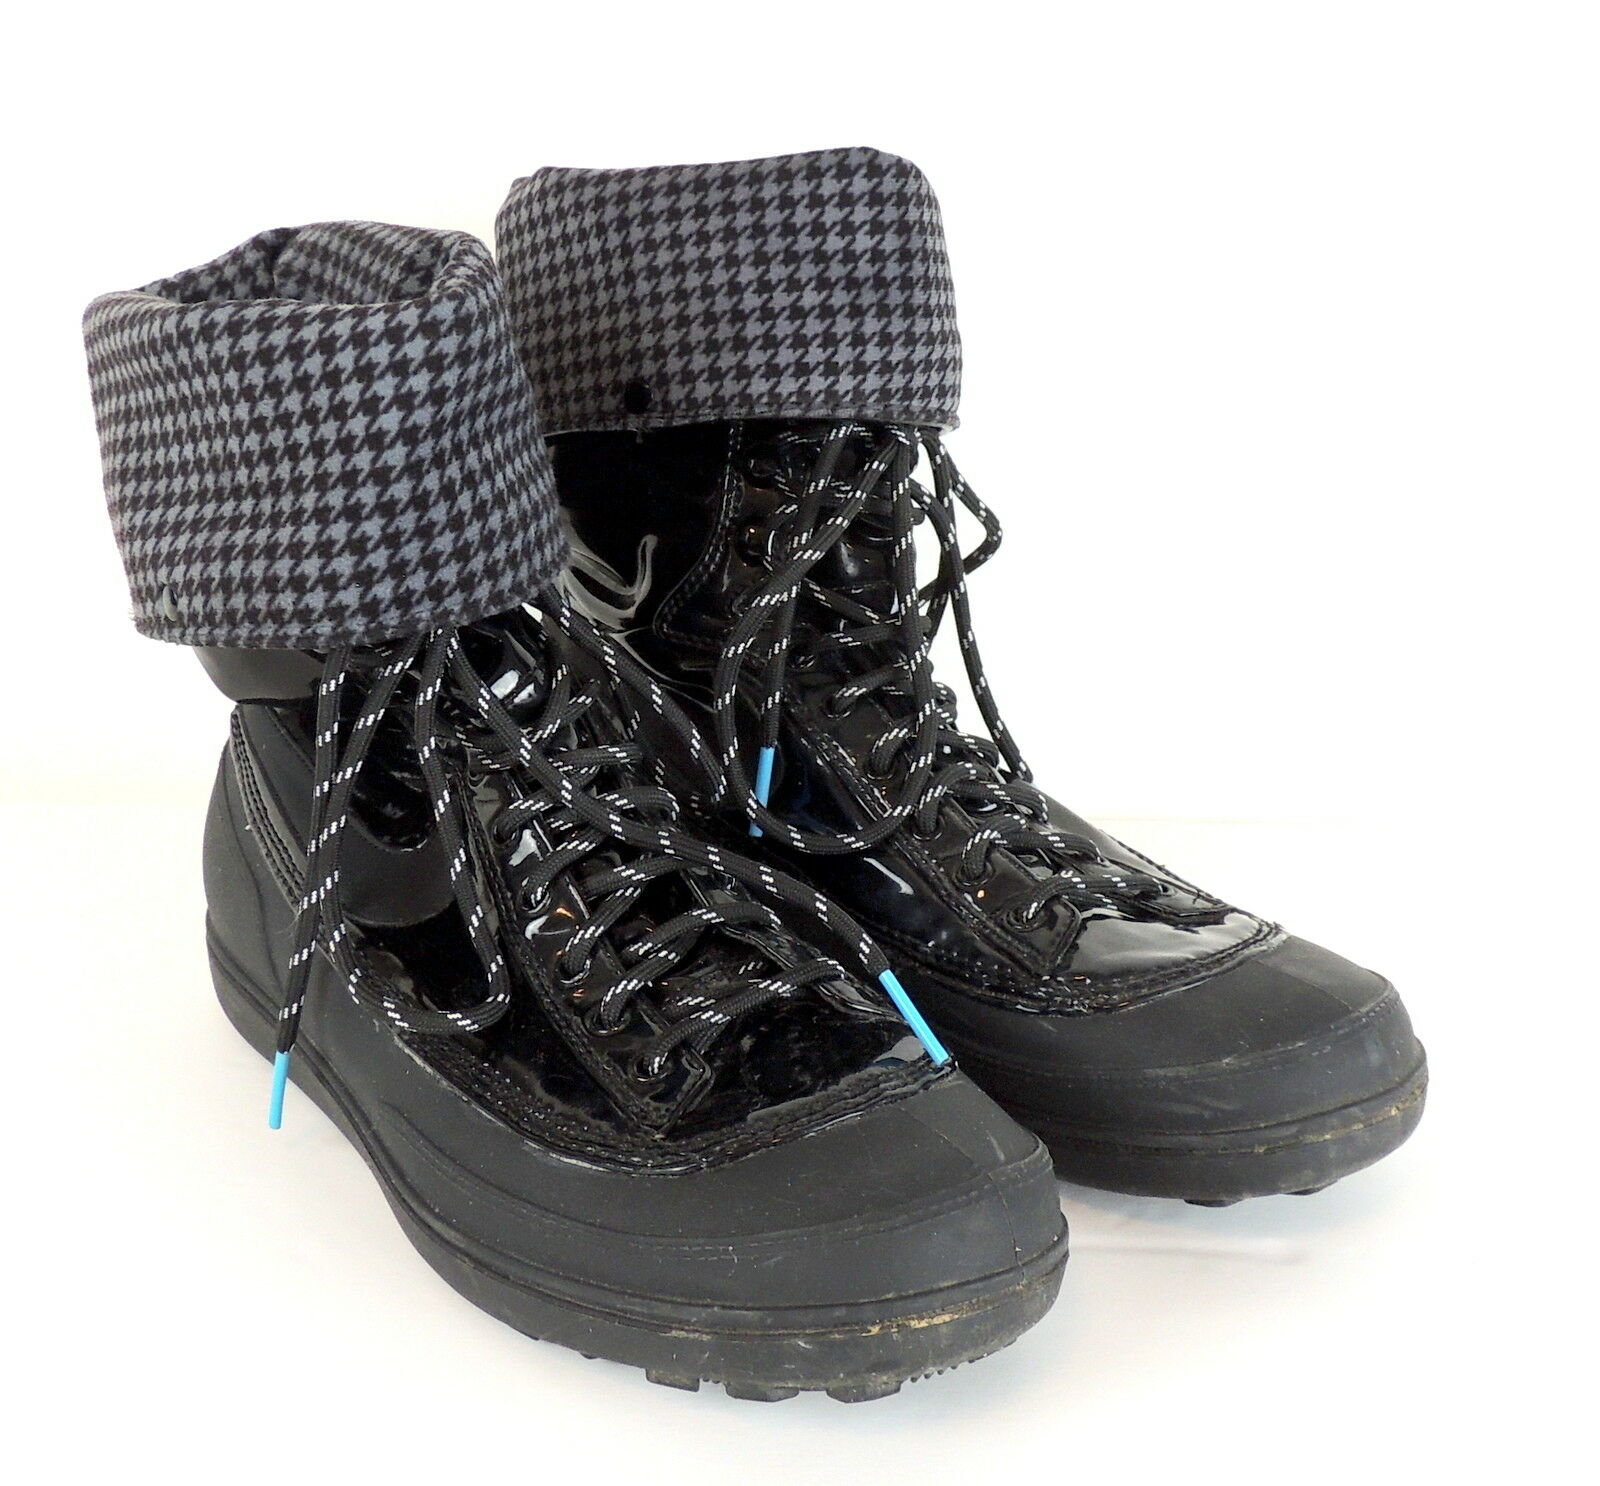 Nike Storm Warrior Hi 407482-003 Black Patent Houndstooth Lined Boot Women US 7